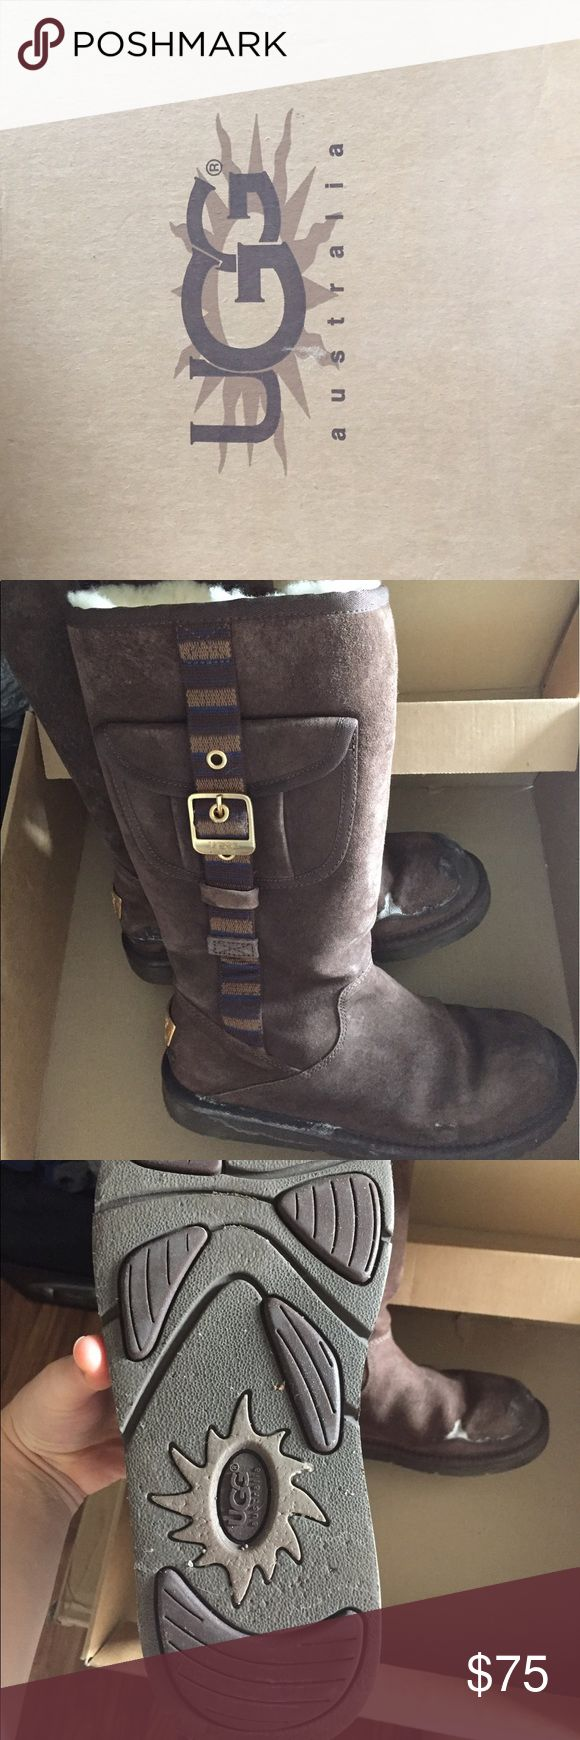 Ugg Boots! Awesome and warm Ugg Boots! I wore them for 2 seasons and I just don't reach for them anymore! They have a bit of salt on them, but nothing major. They have their original box. Size 7.  Normally wear a 7.5. UGG Shoes Winter & Rain Boots